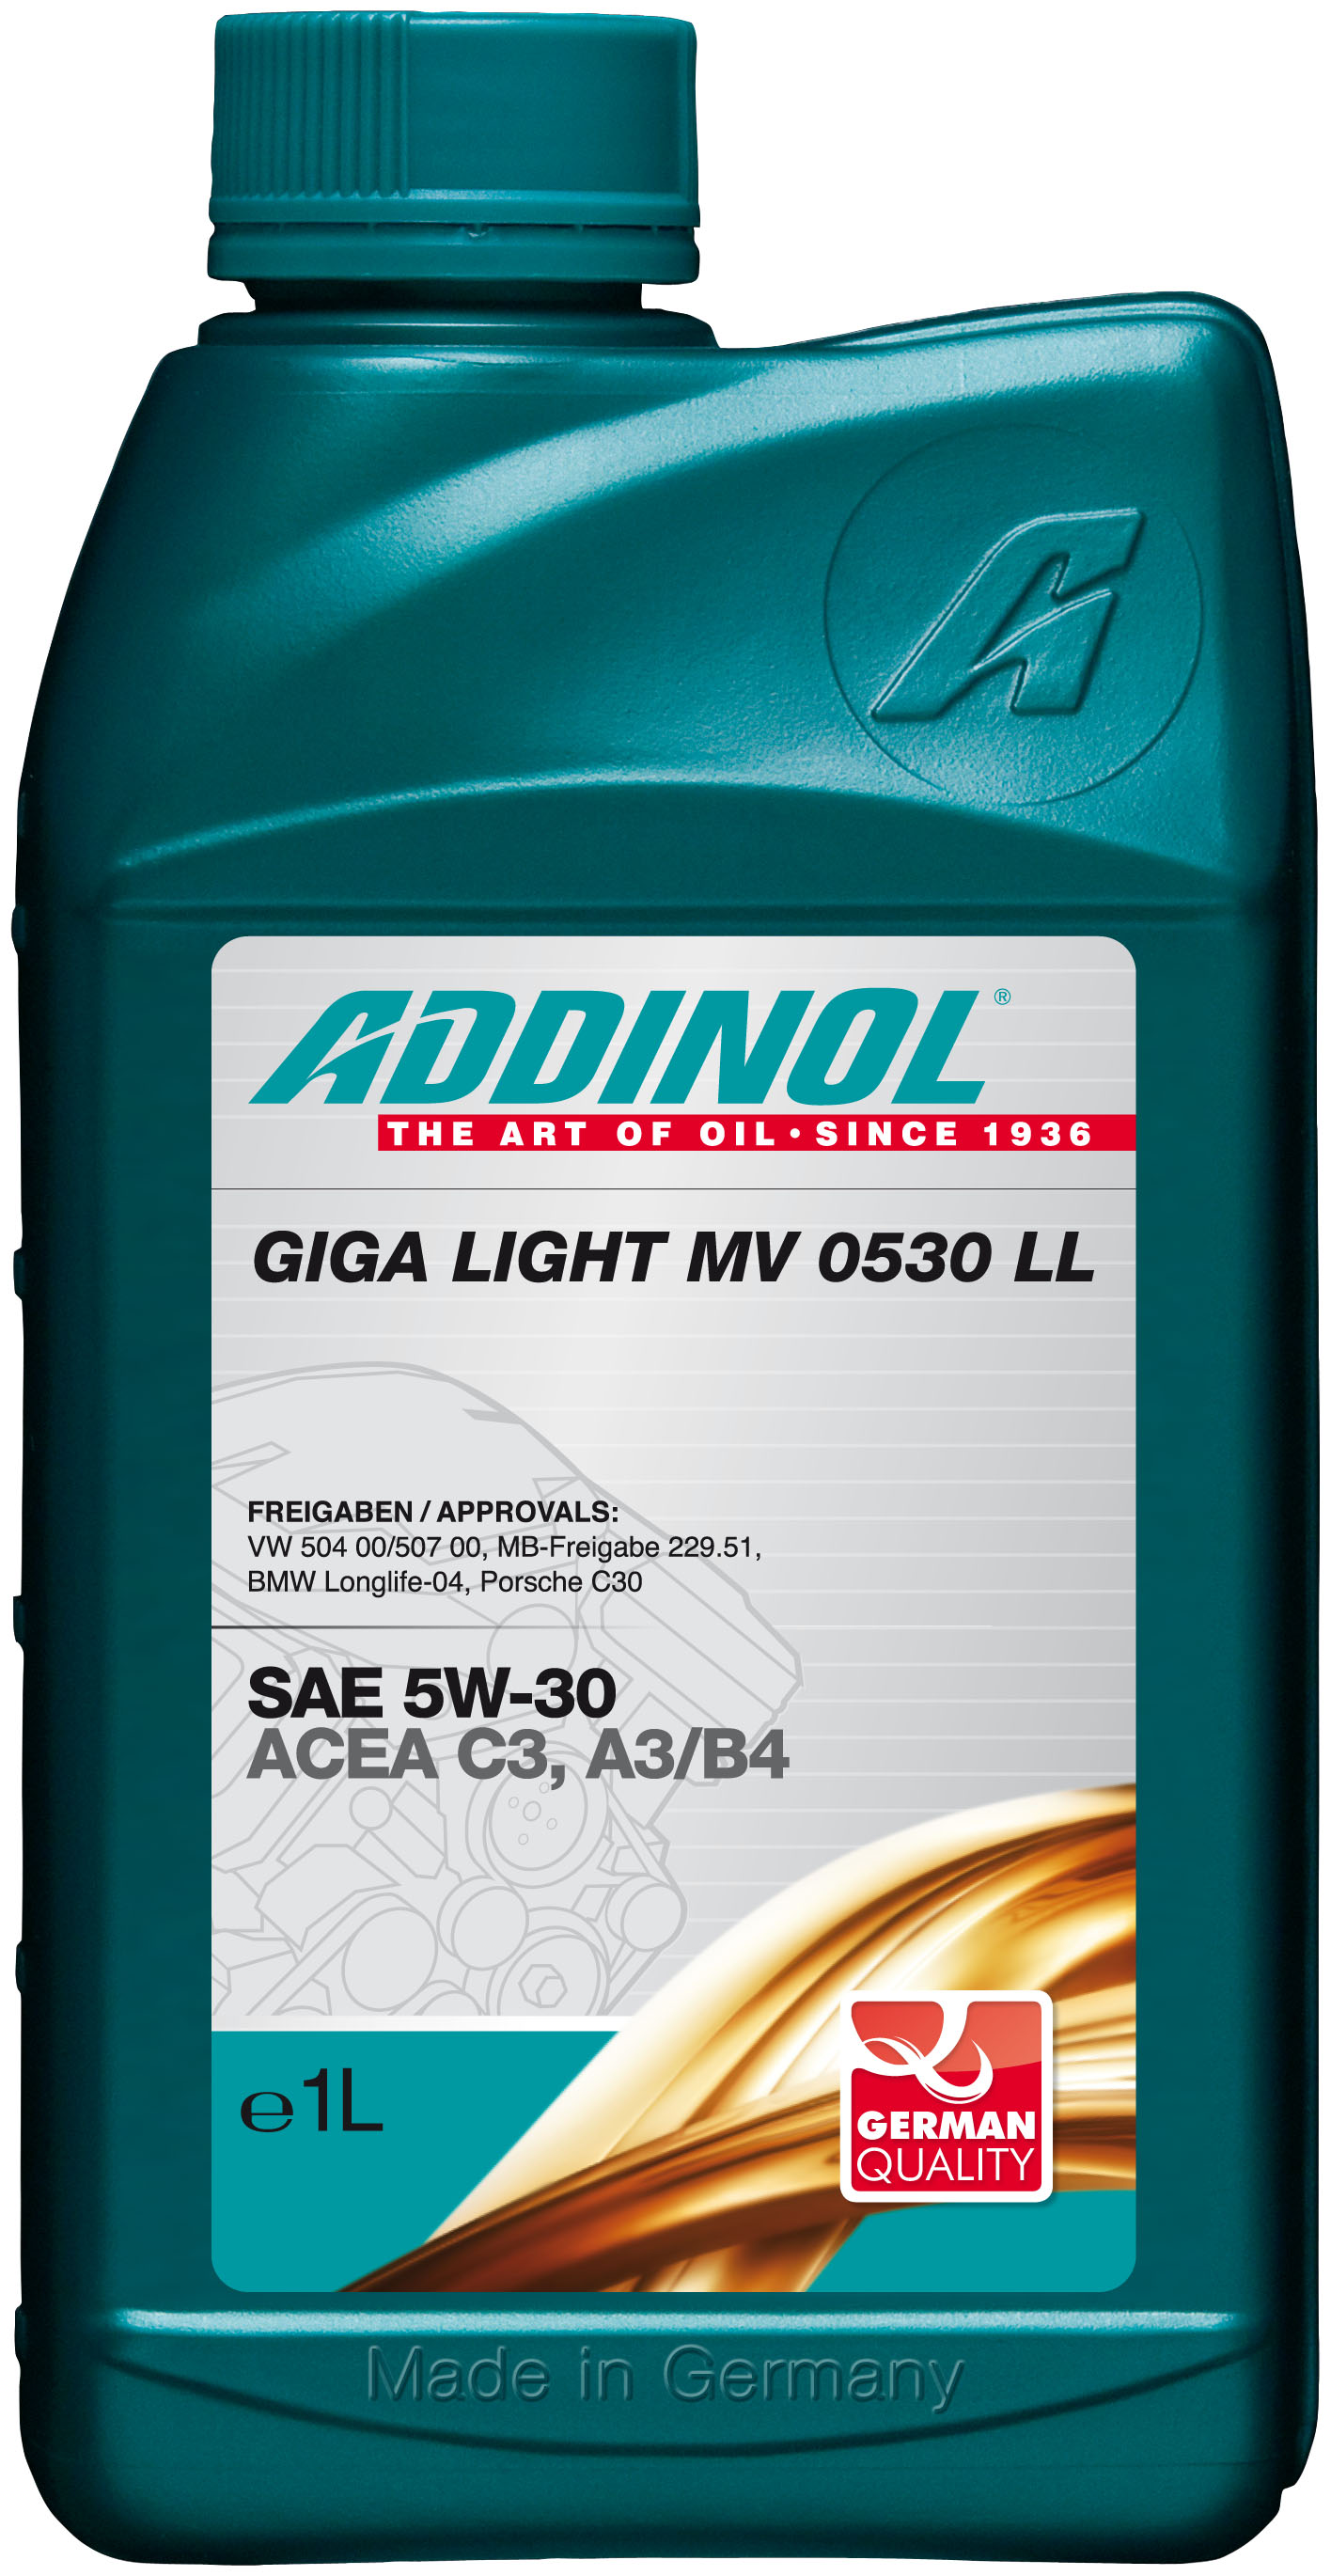 Купить запчасть ADDINOL - 4014766072573 Giga Light (Motorenol) MV 0530 LL 5W-30, 1л